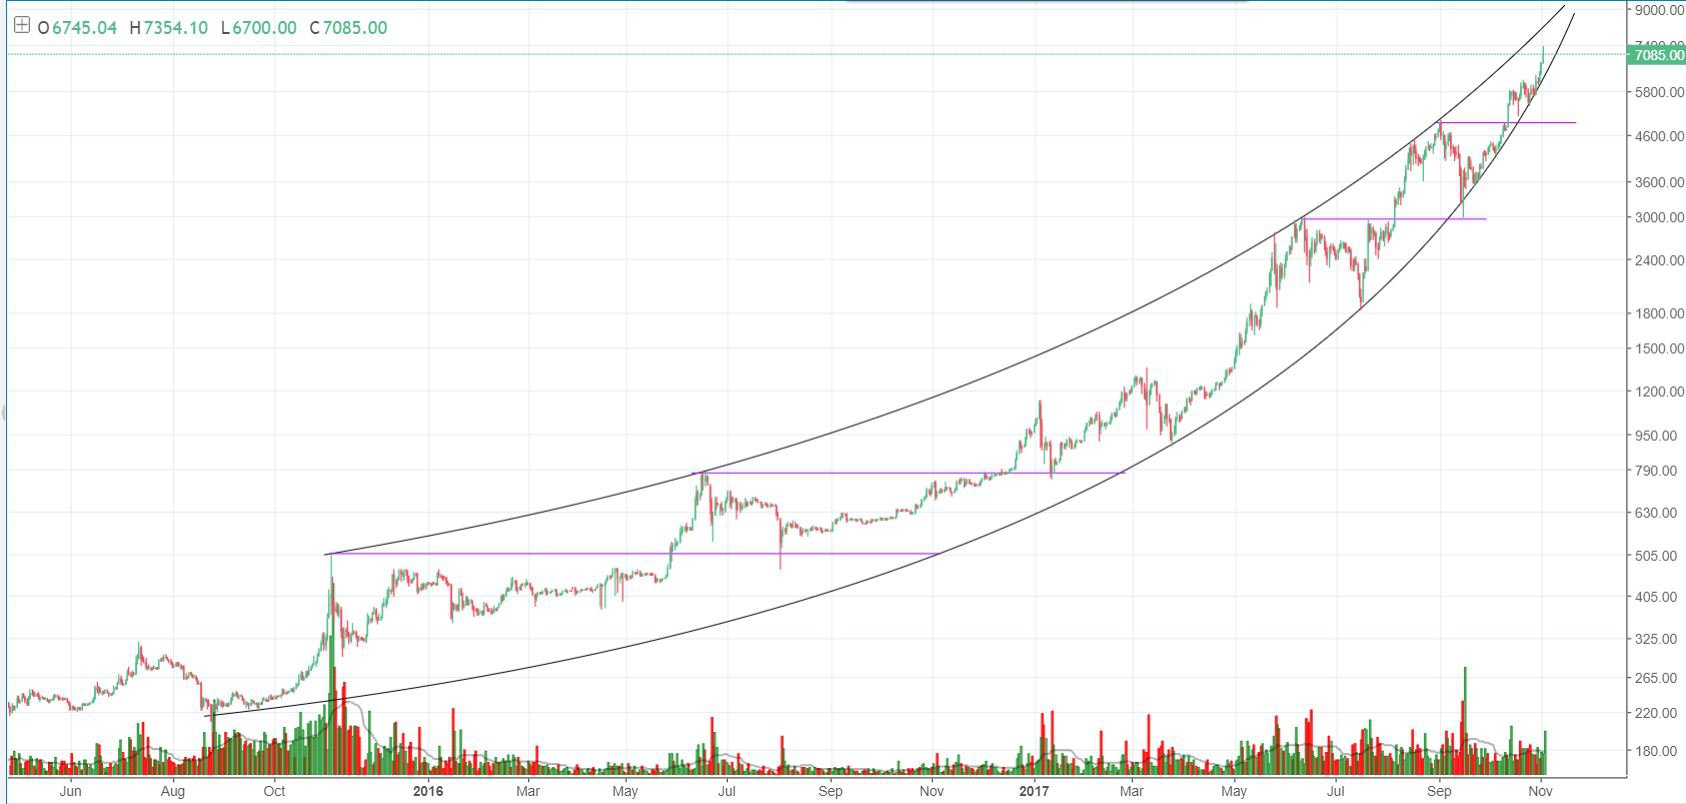 The Cryptocurrency News Group Bitcoin Price Analysis: Bitcoin's Parabolic Envelope Could Push to $8000s